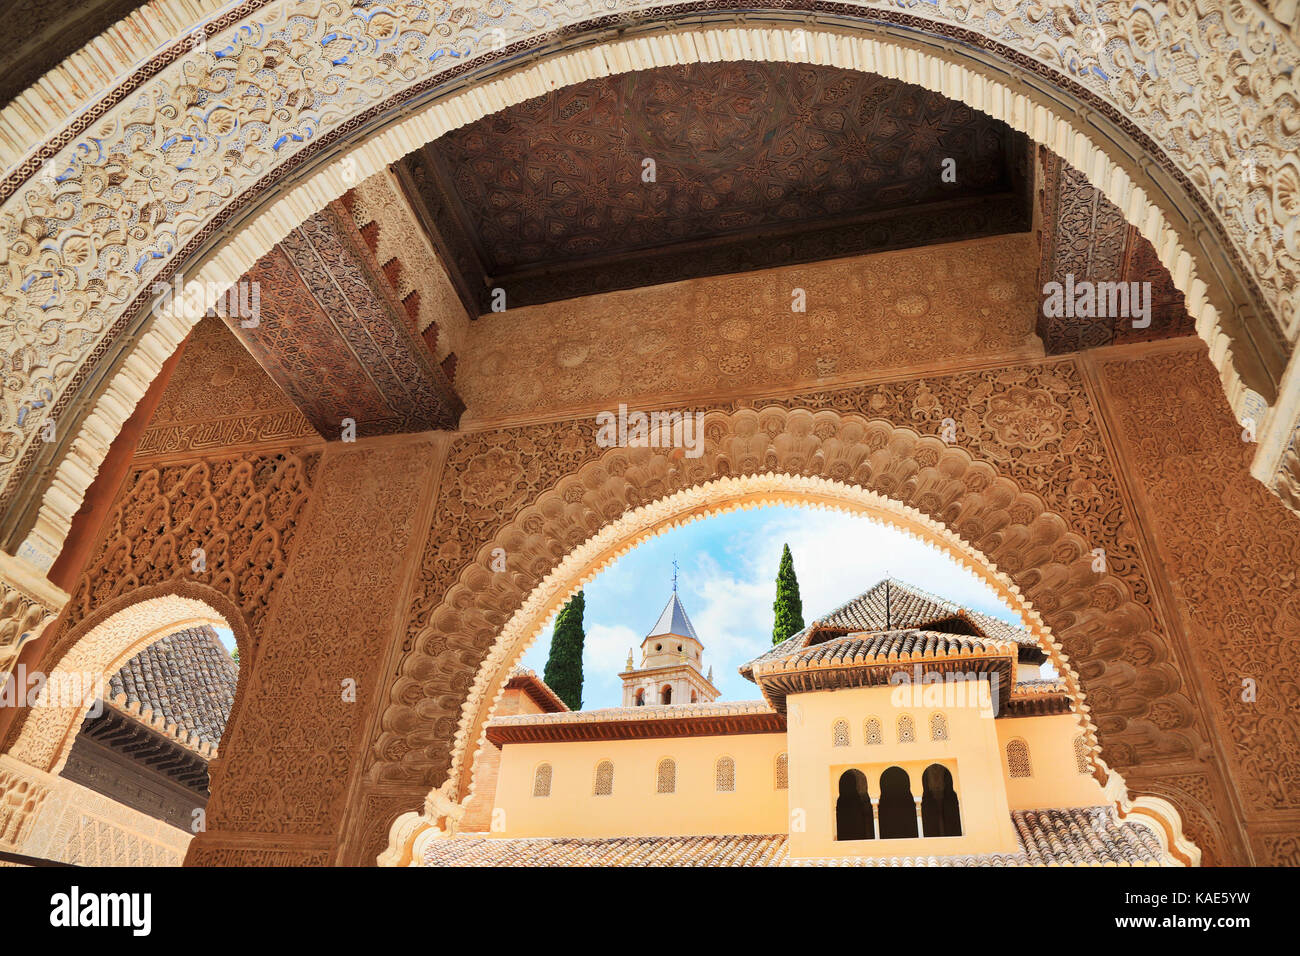 GRANADA, SPAIN - JUNE 29, 2017: Alhambra, the complete Arabic form of which was Qalat Al-Hamra, is a palace and - Stock Image